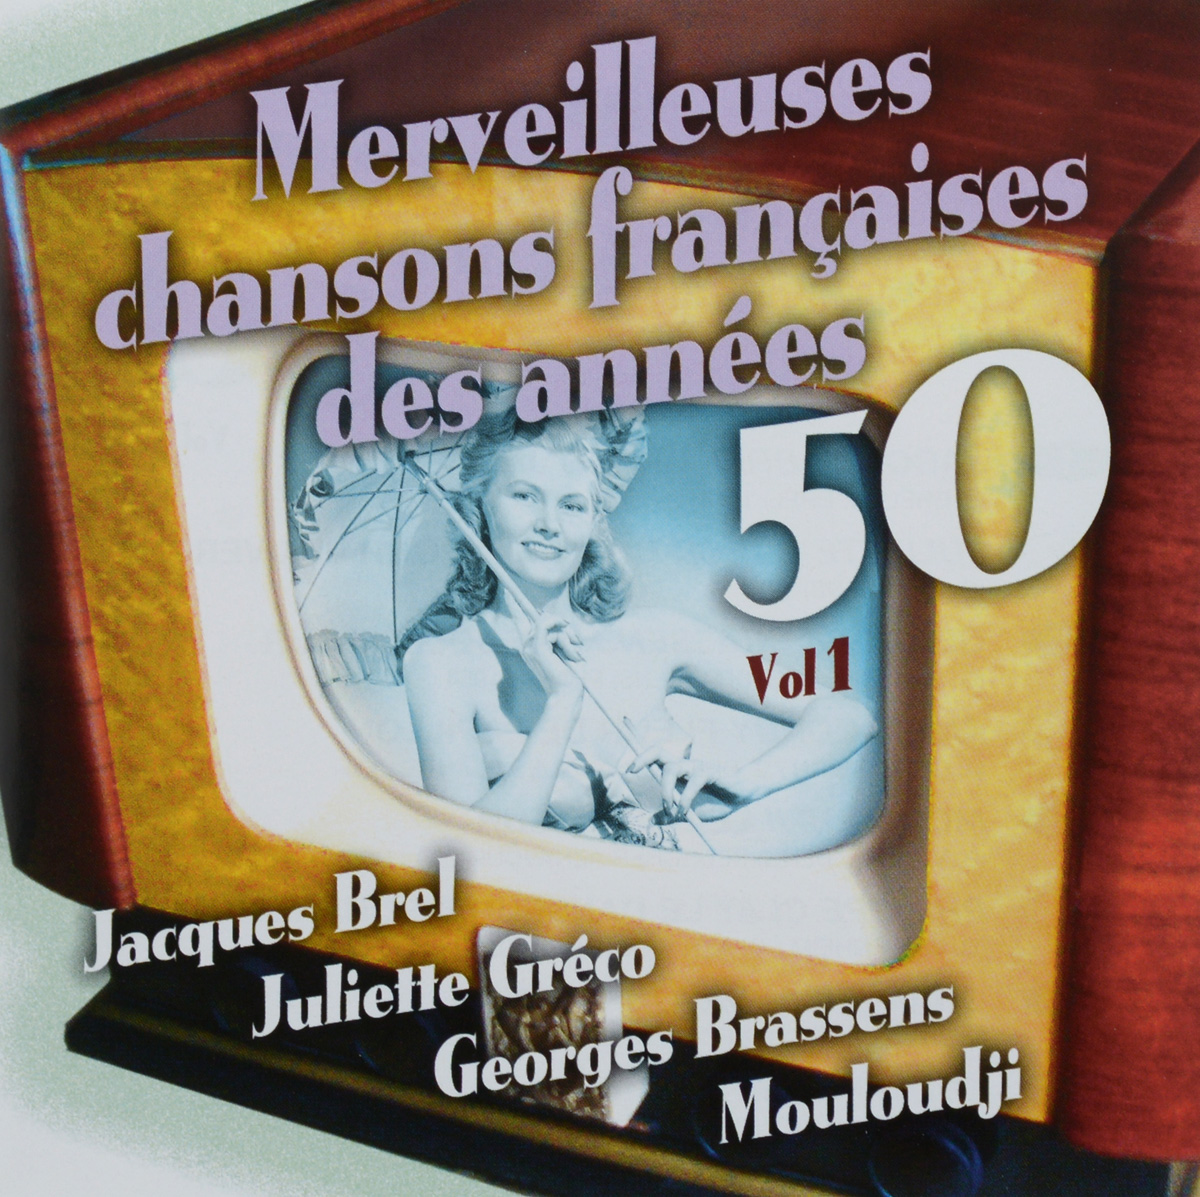 VARIOUS ARTISTS. CHANSONS FRANCAISES DES ANNEES 50 VOL. 1